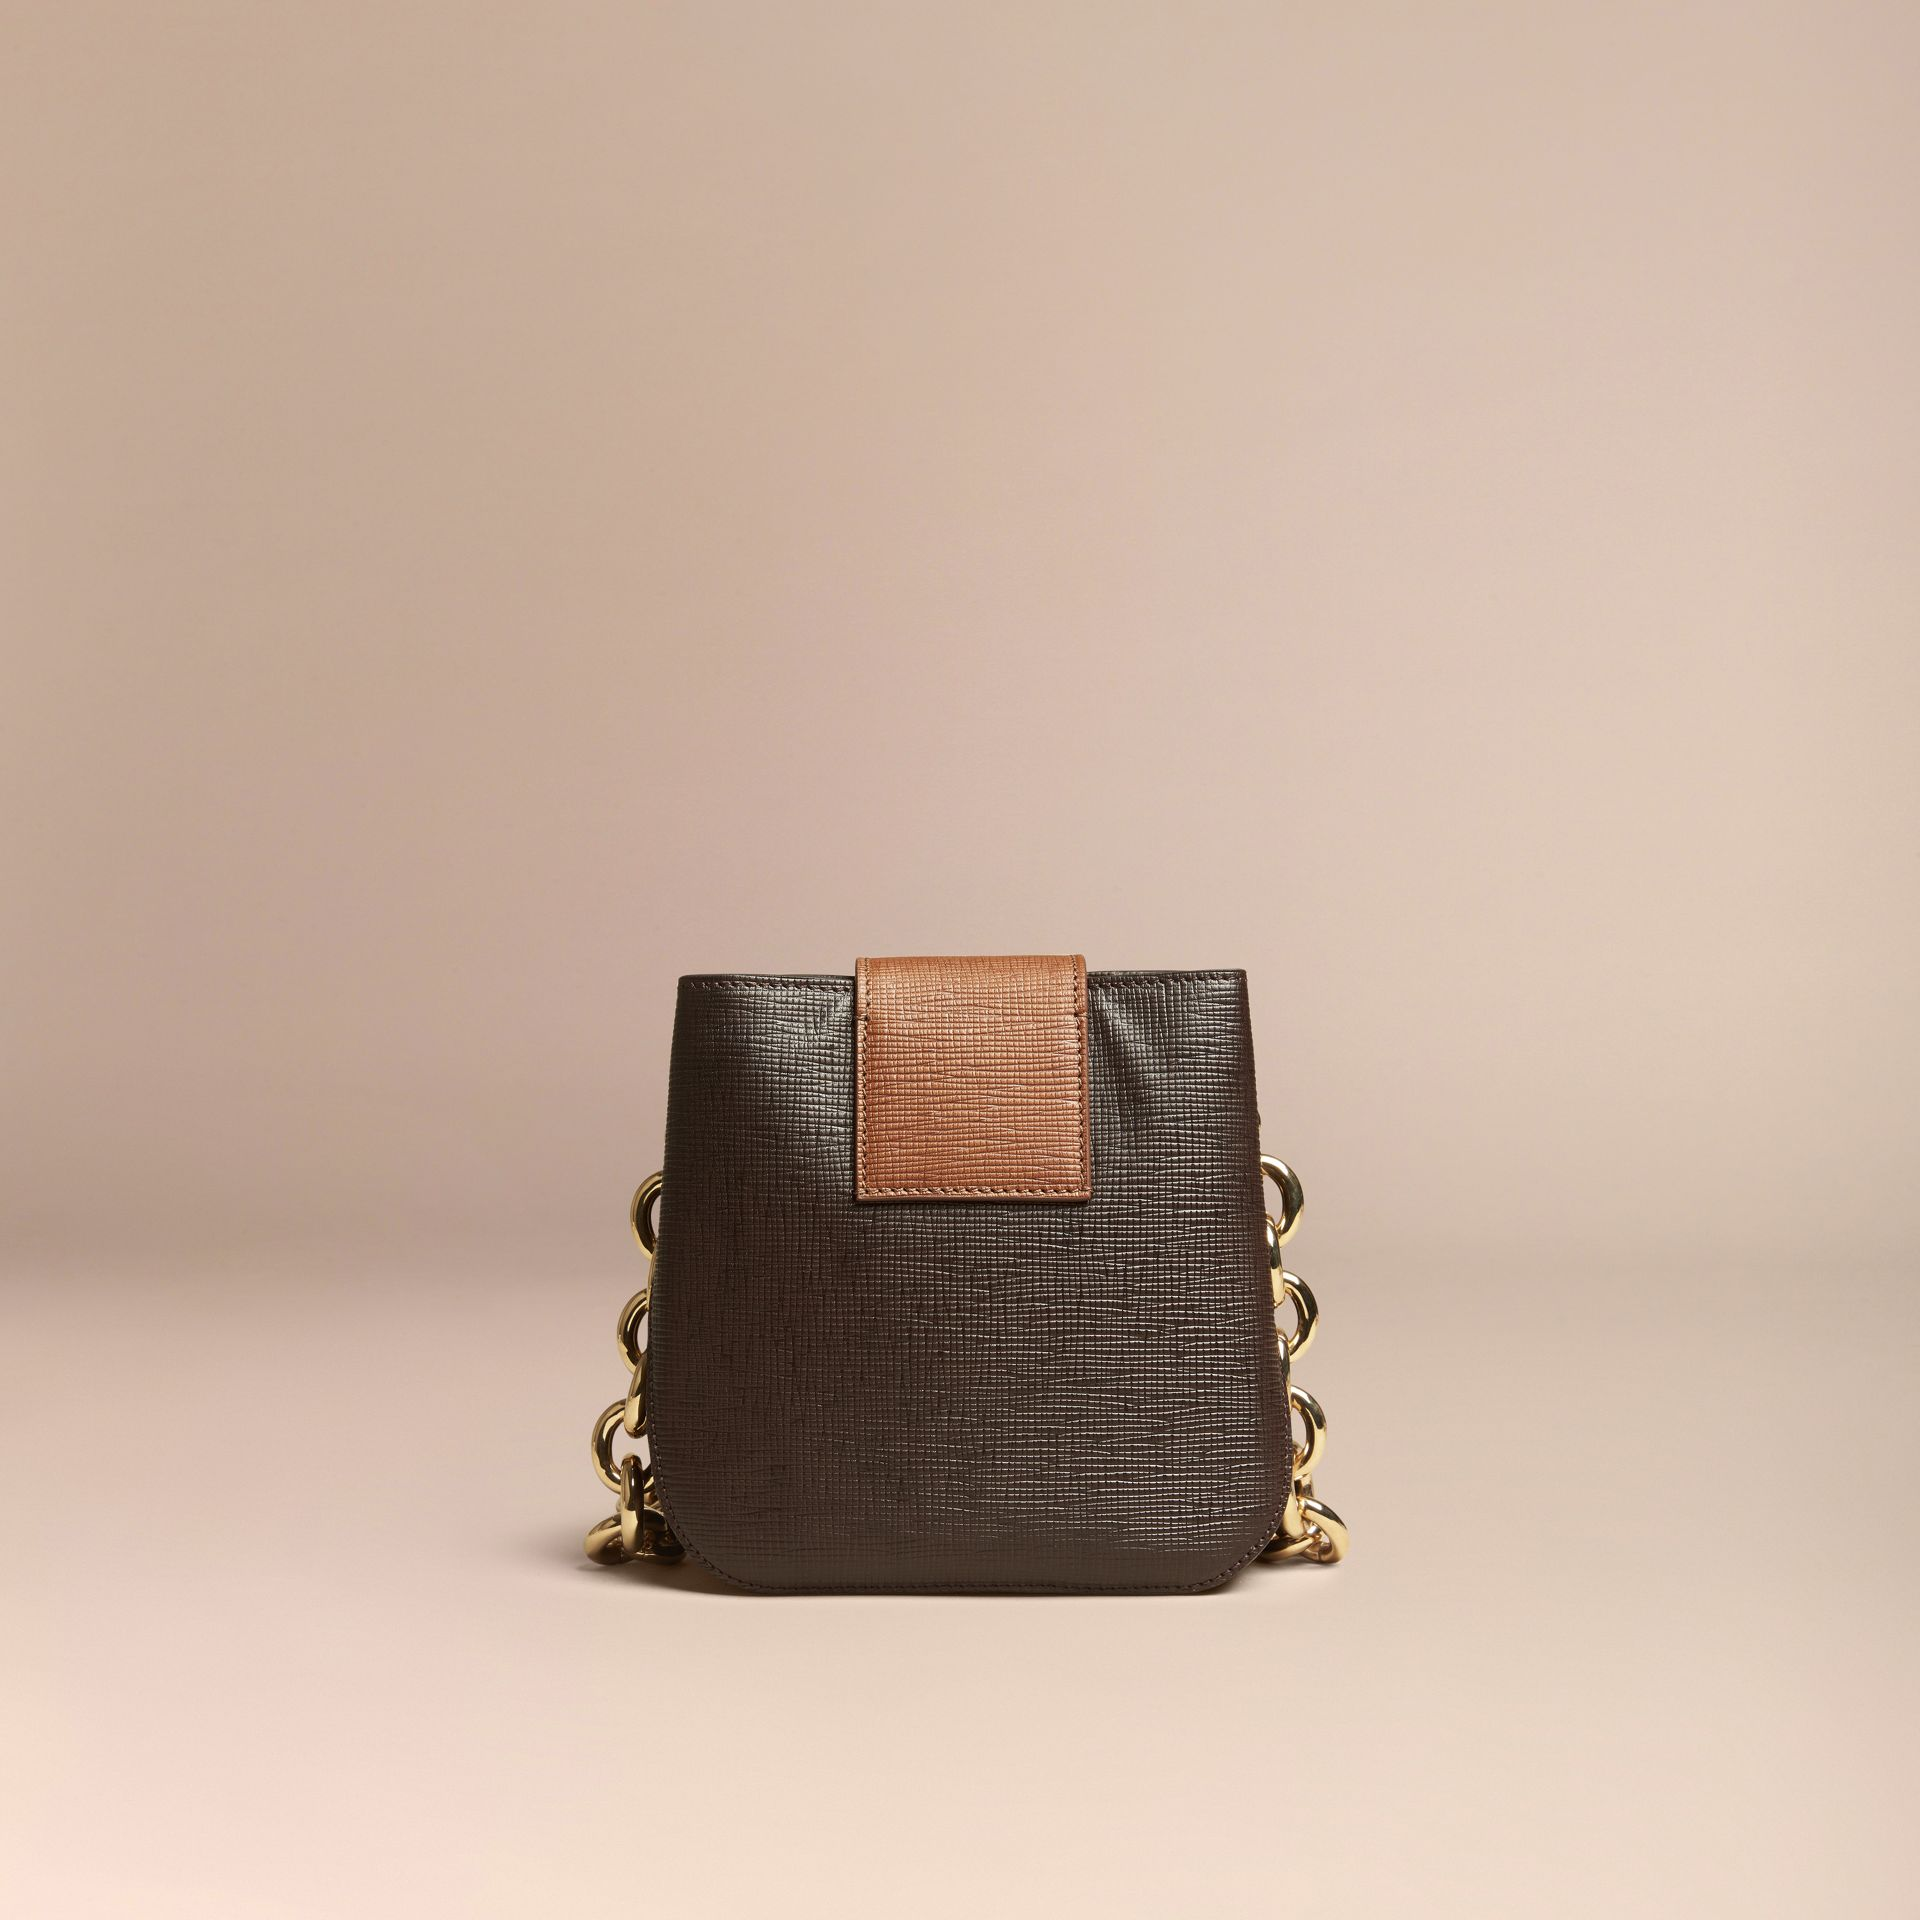 Dark clove brown The Small Square Buckle Bag in Textured Leather - gallery image 4